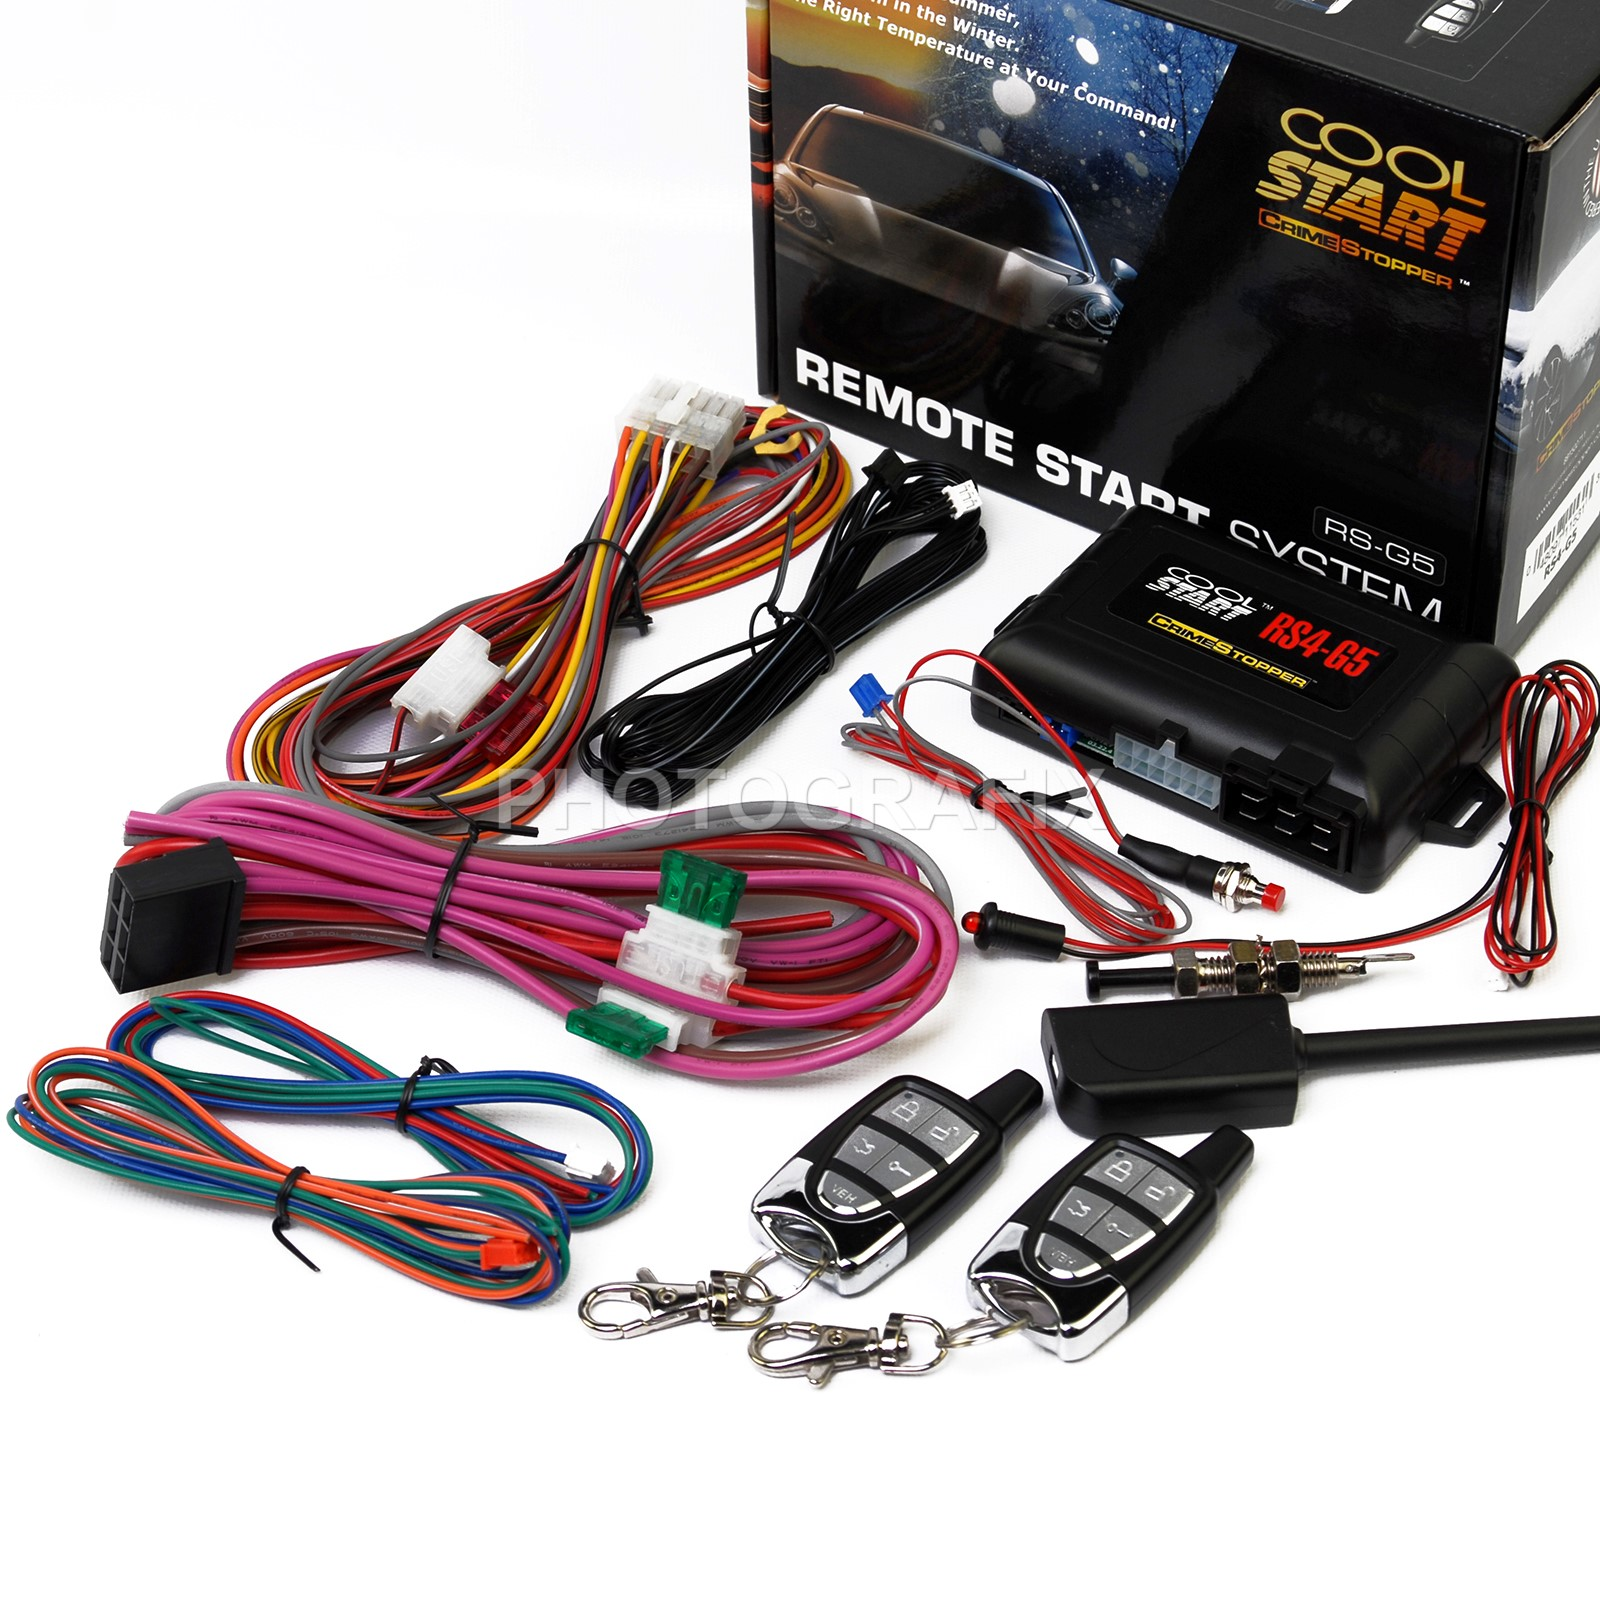 small resolution of crimestopper rs4 g5 1 way remote start keyless entry system with trunk release